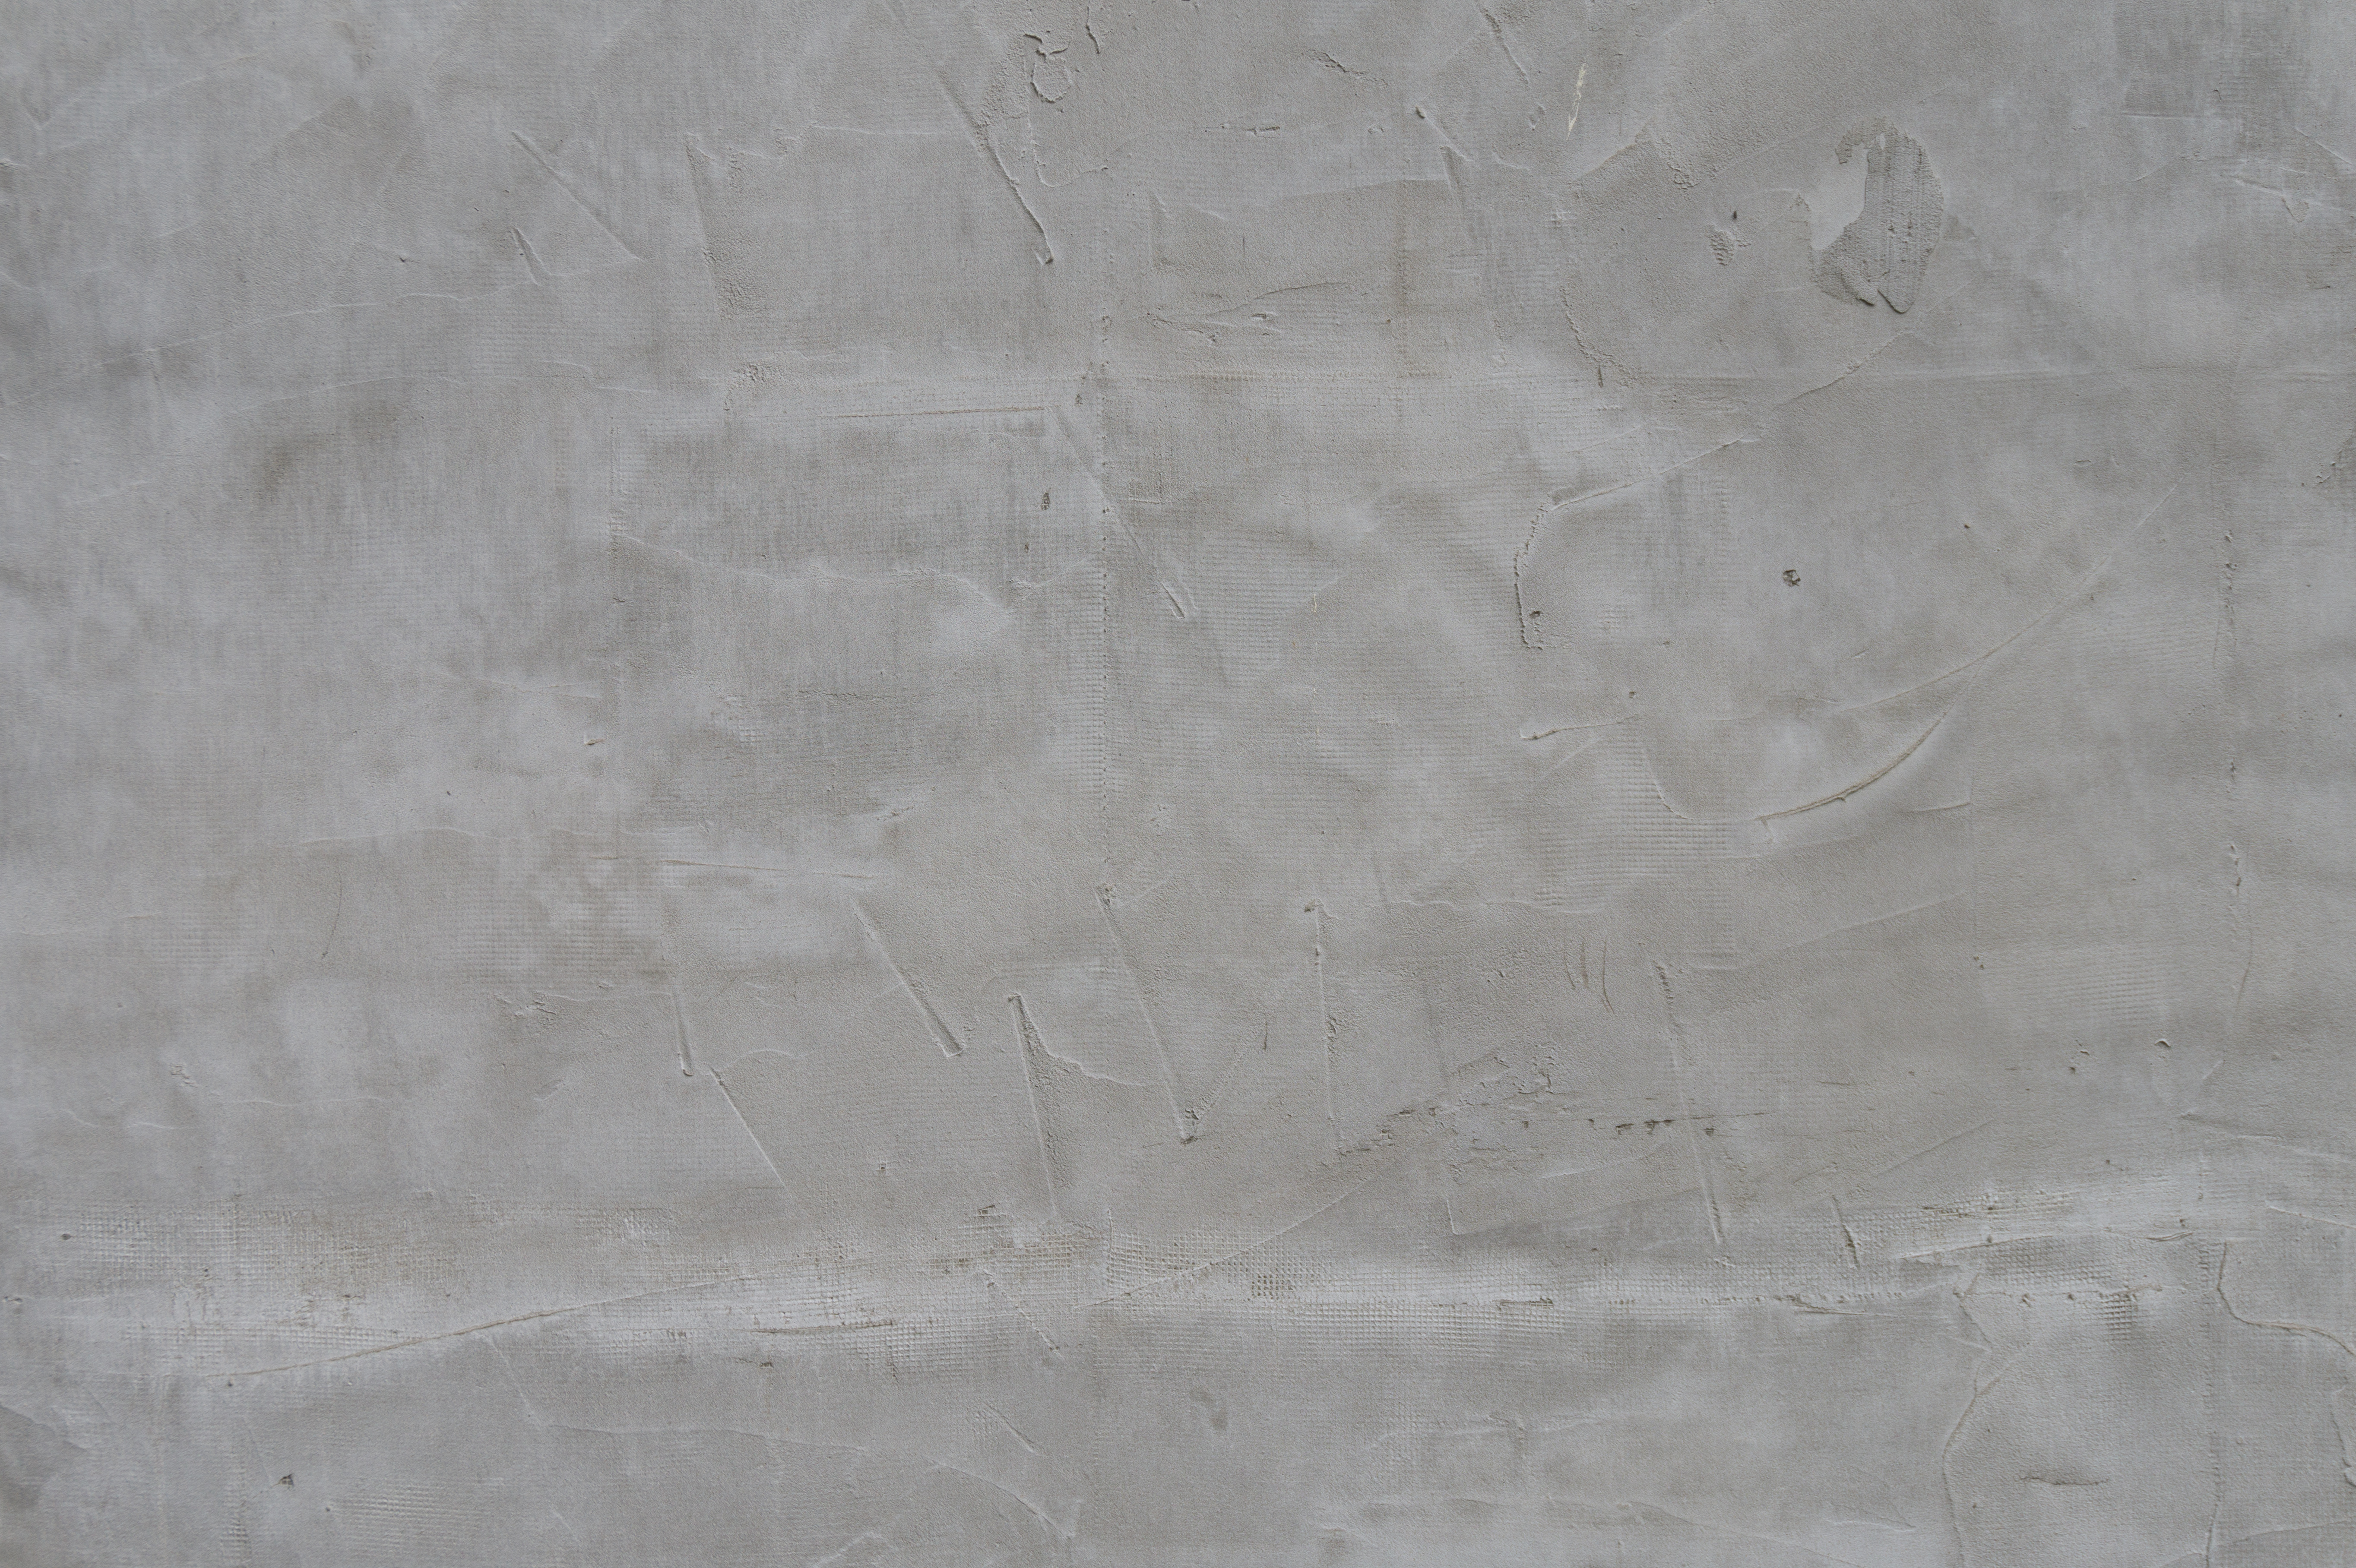 cement wall concrete texturify free textures